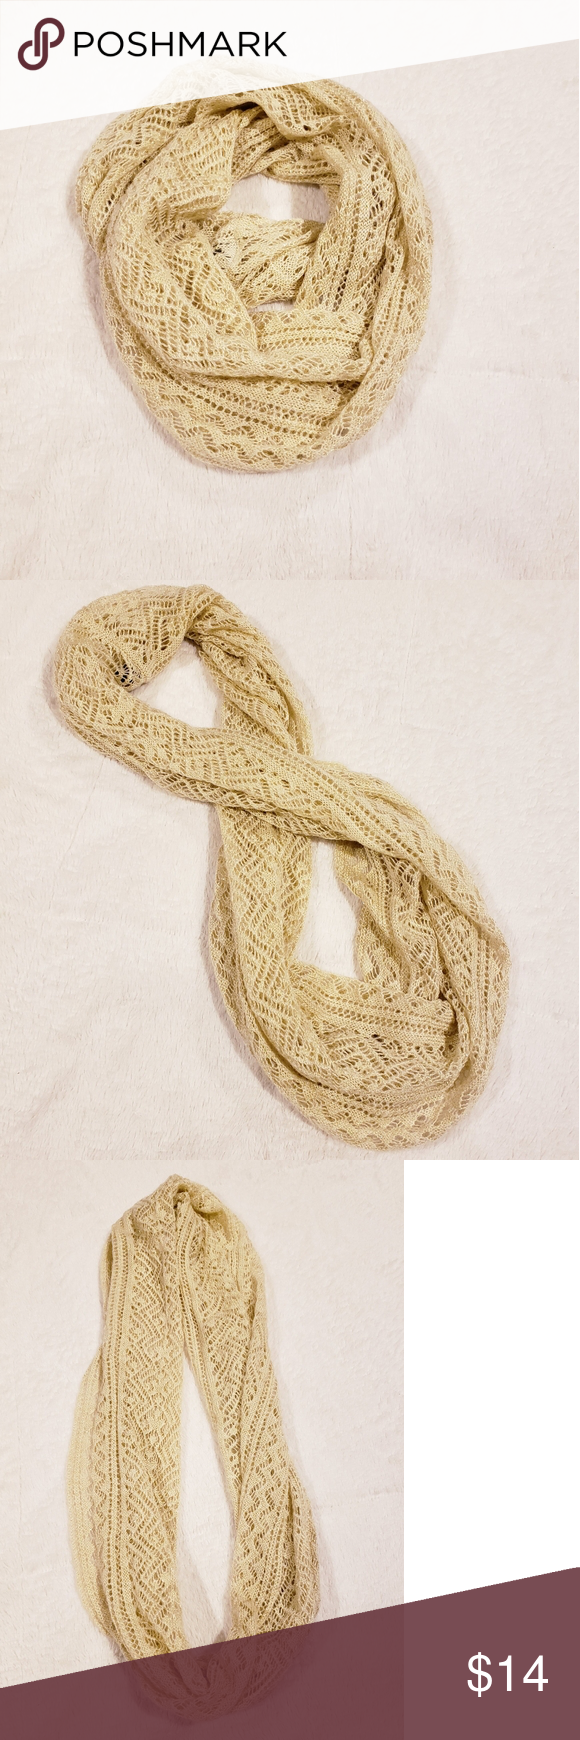 Photo of Charlie Paige Gold Loose Knit Infinity Scarf Charlie Paige loose knit infinity s…